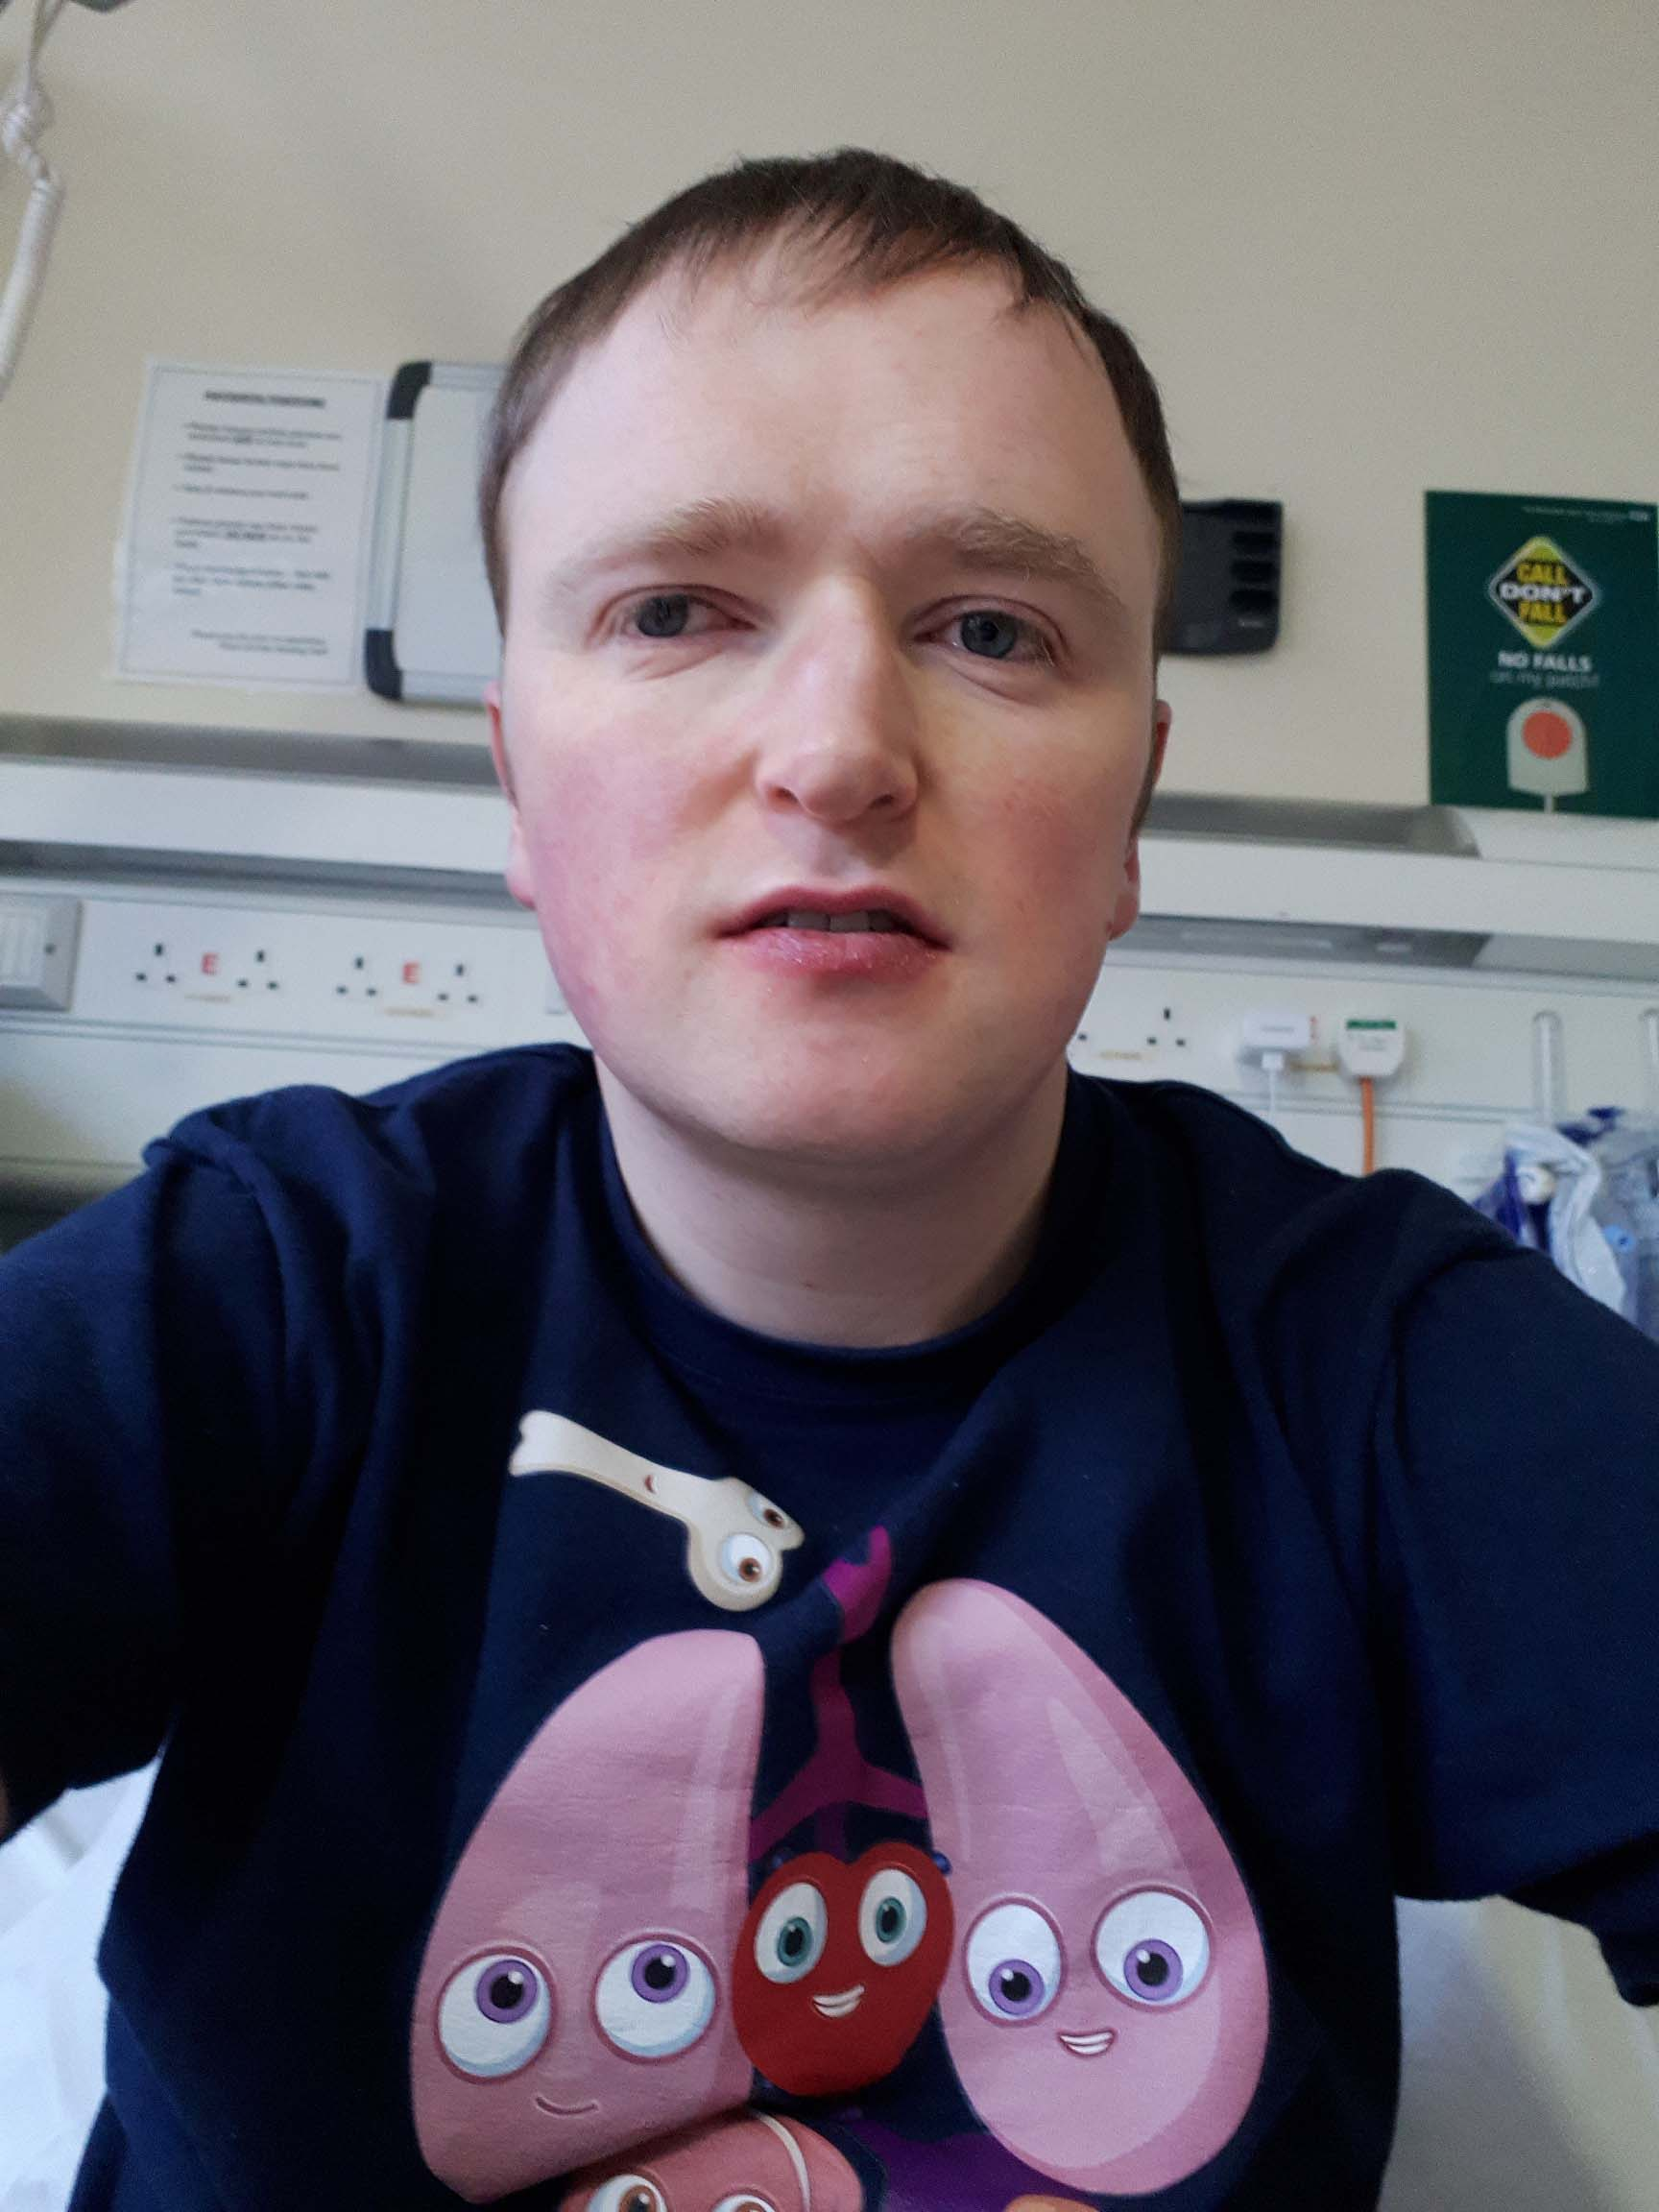 Patrick sits on a hospital bed wearing an organs t-shirt